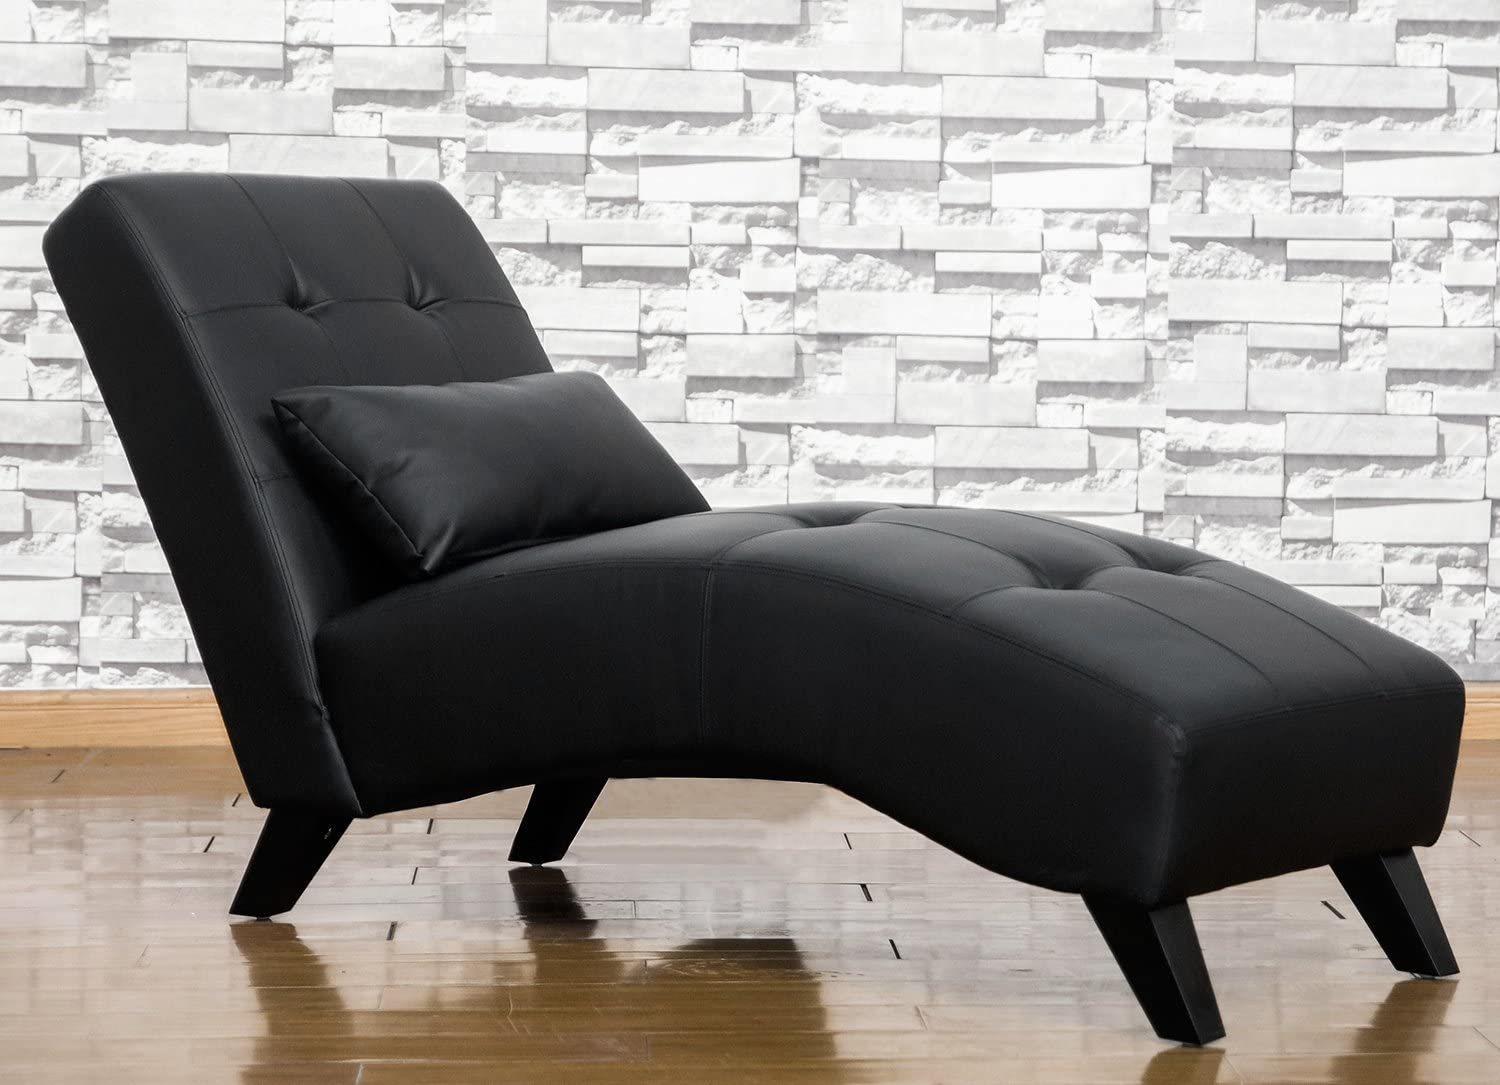 Merax Modern Chaise Lounge Chair Black Leatherette Leisure Sofa Couch Living Room Furniture  sc 1 st  Amazon.com : funky chaise lounge - Sectionals, Sofas & Couches